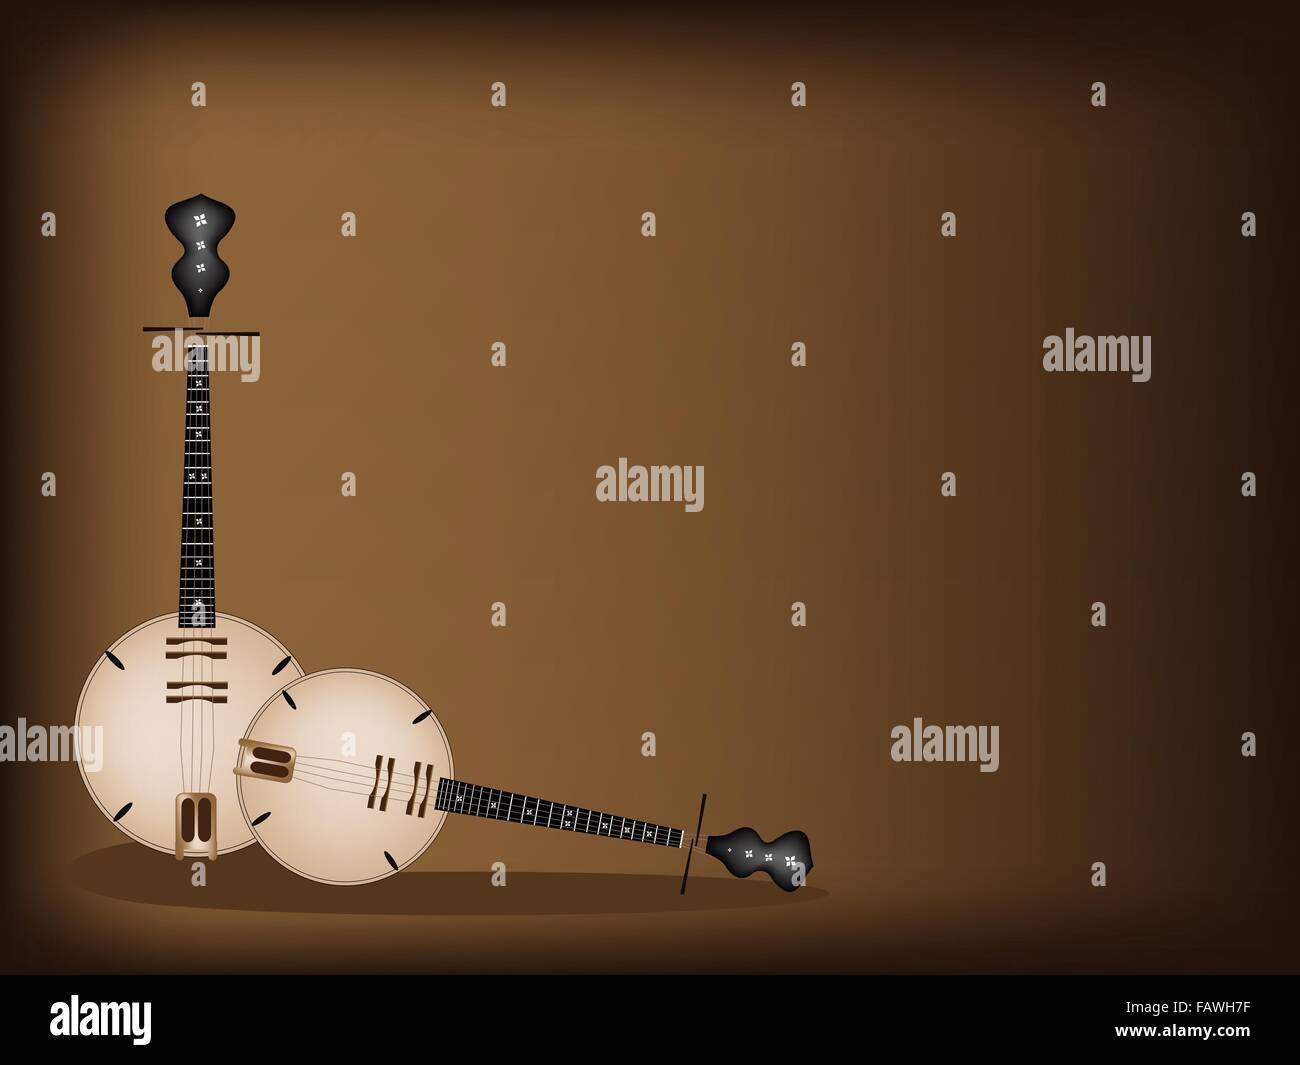 Music Instrument, An Illustration Brown Color of Banjo or Dan Nguyet on Beautiful Dark Brown Background with Copy - Stock Image